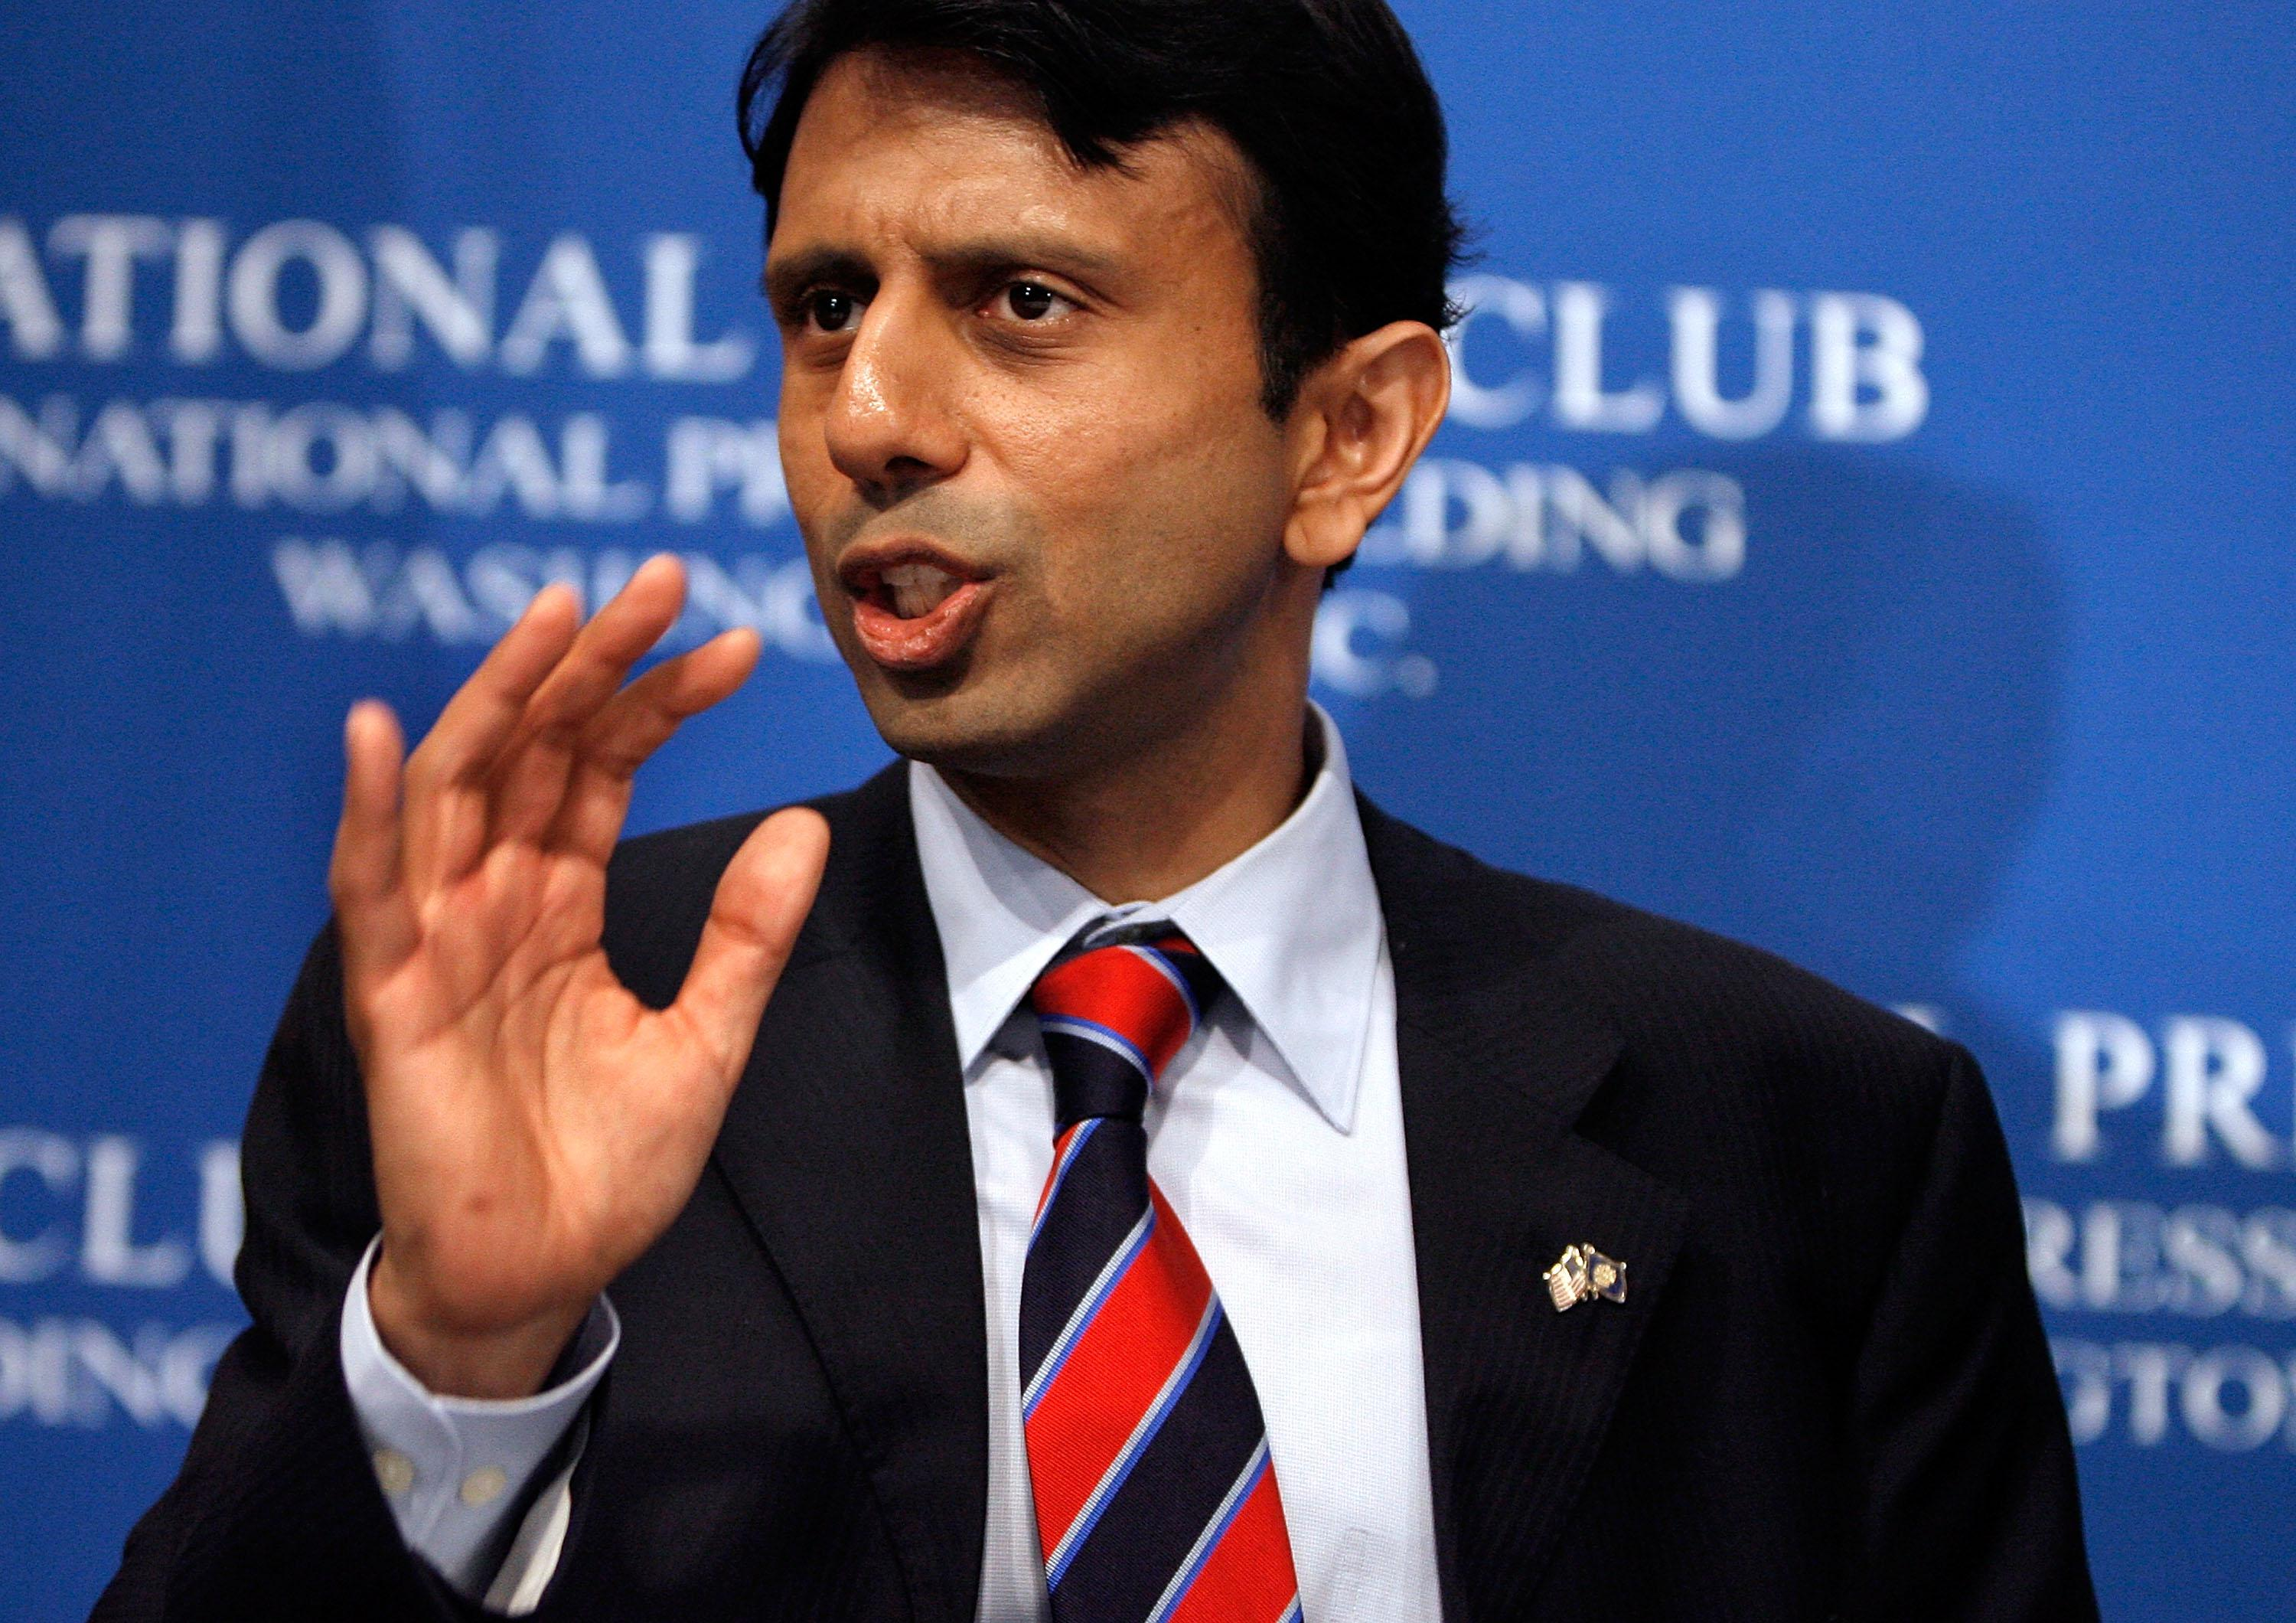 Louisana Gov. Bobby Jindal addresses the National Press Club May 2, 2008, in Washington, D.C.